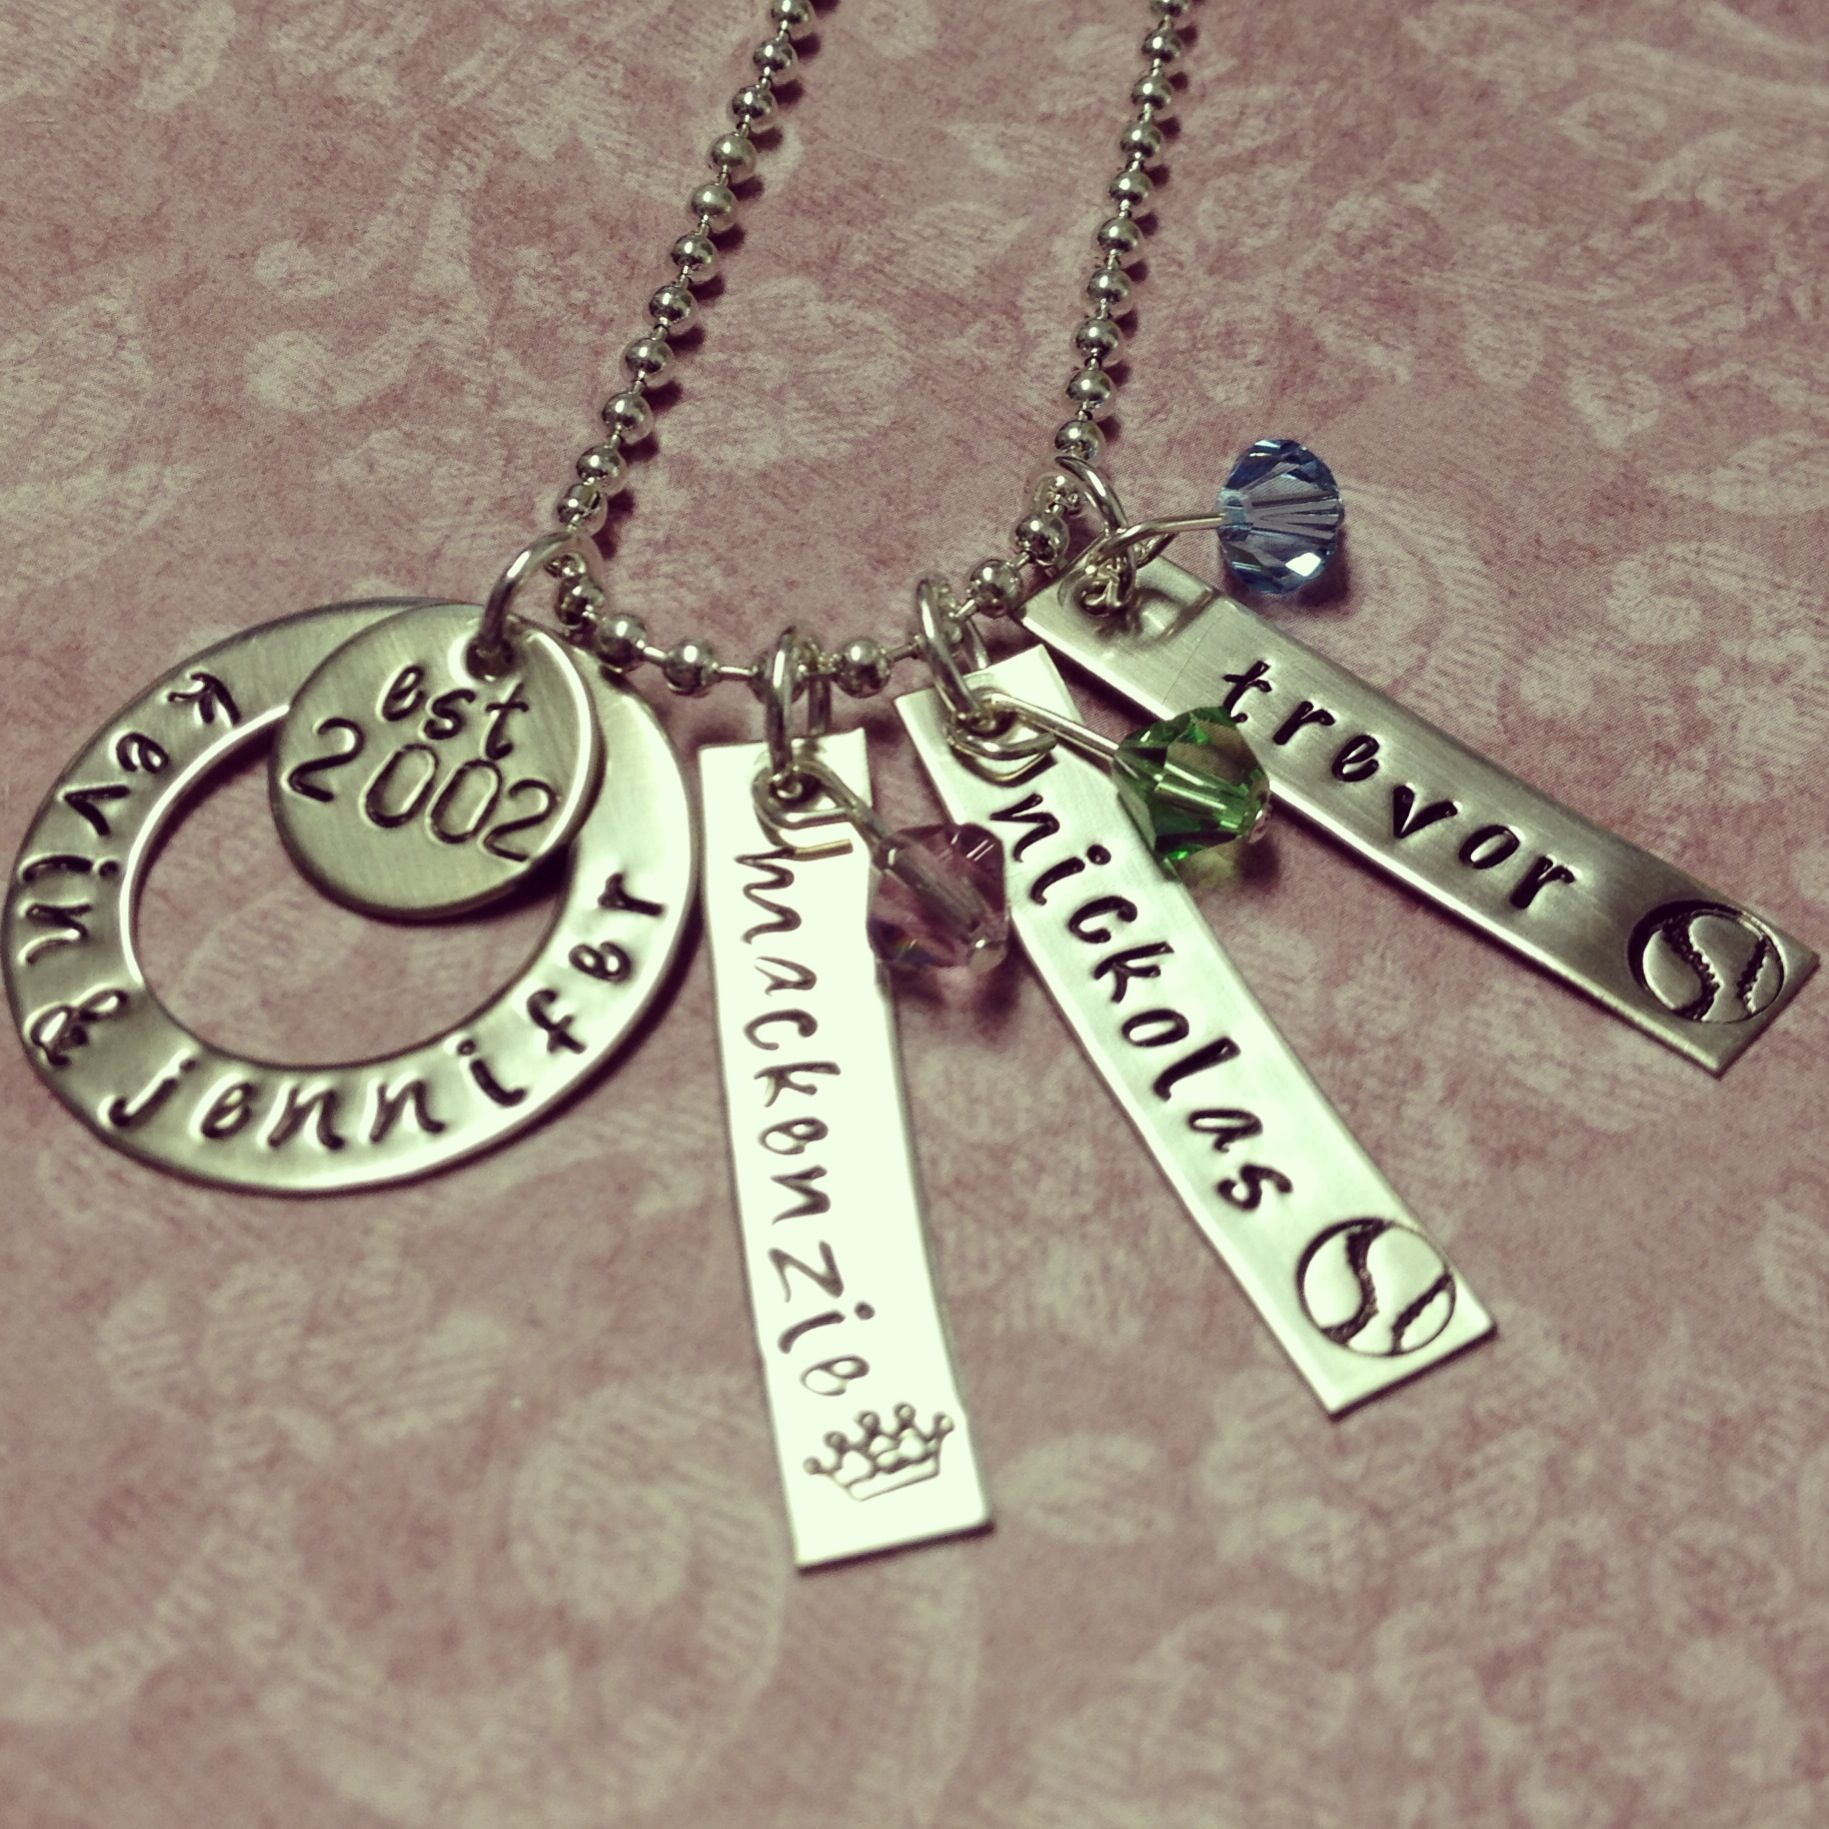 Hand stamped metal jewelry jewelry pinterest for How to make hand stamped jewelry